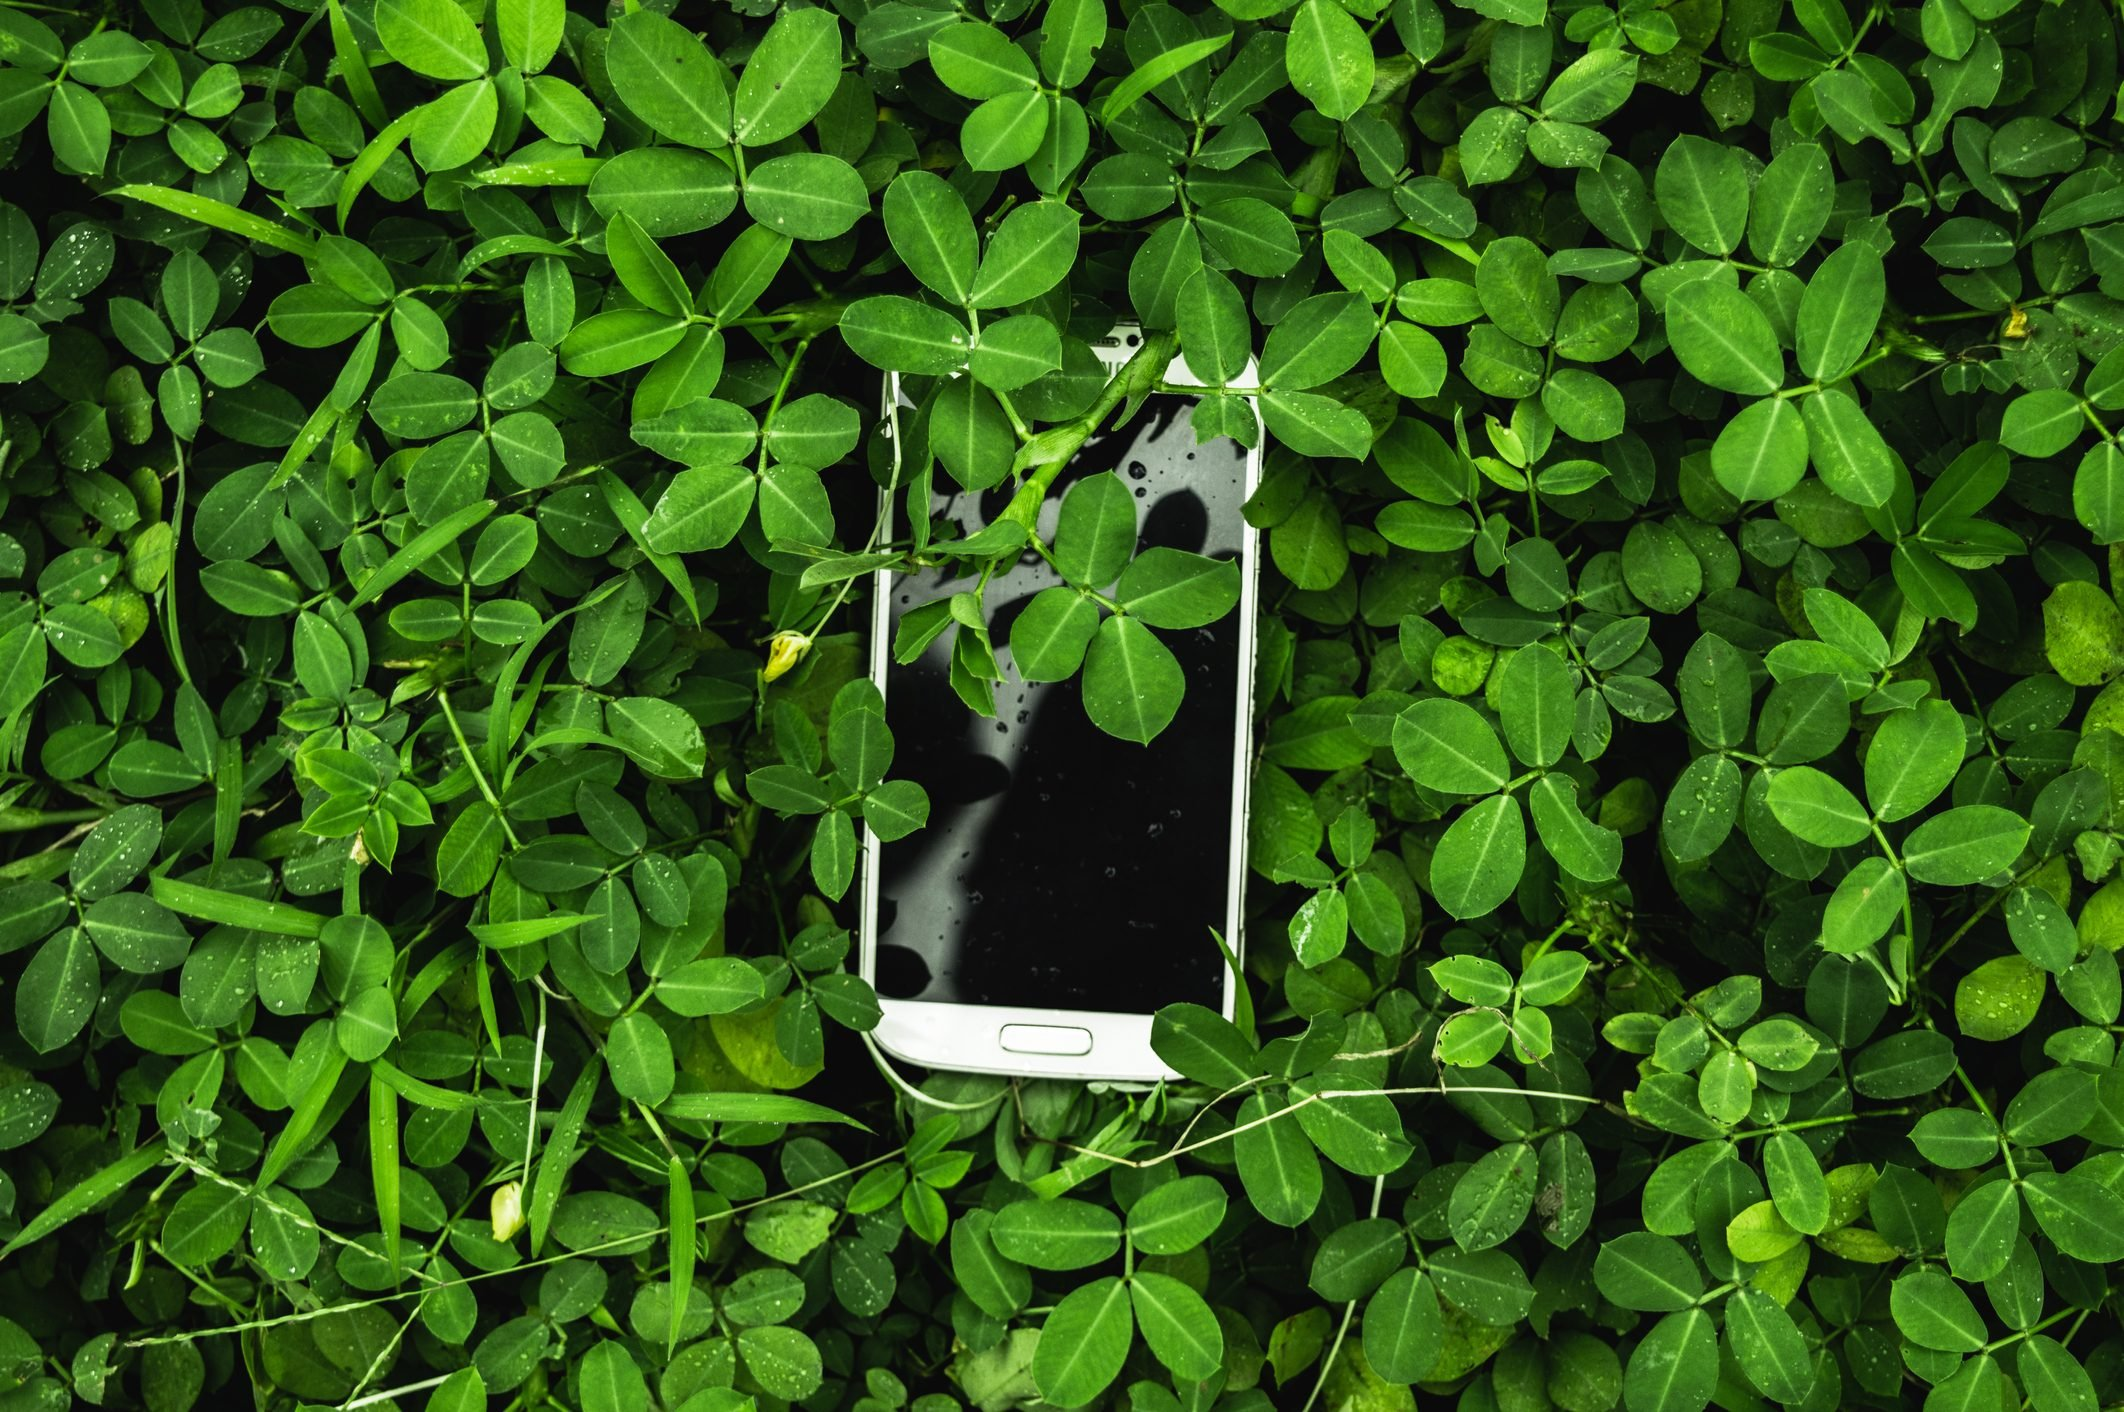 Directly Above Shot Of Smart Phone Over Plants